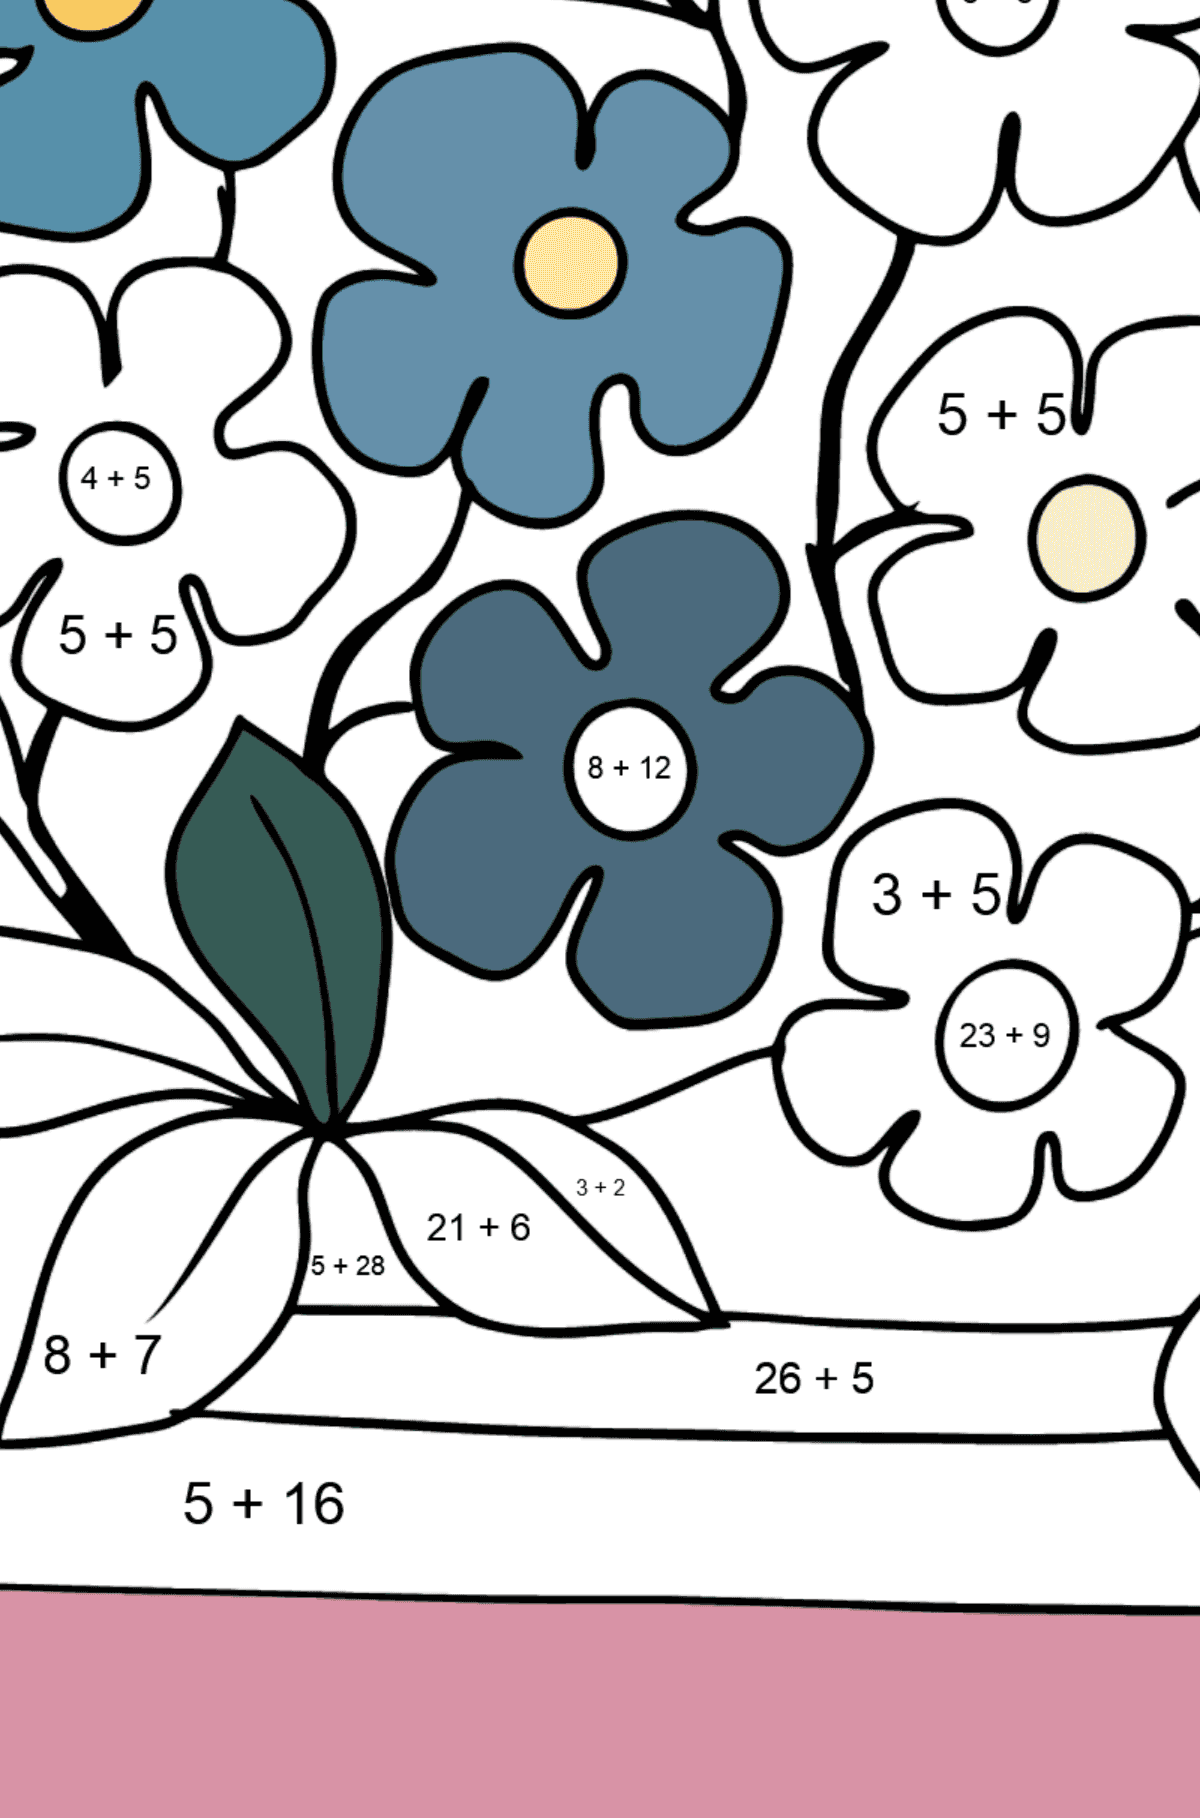 Flower Coloring Page - Forget me nots - Math Coloring - Addition for Kids